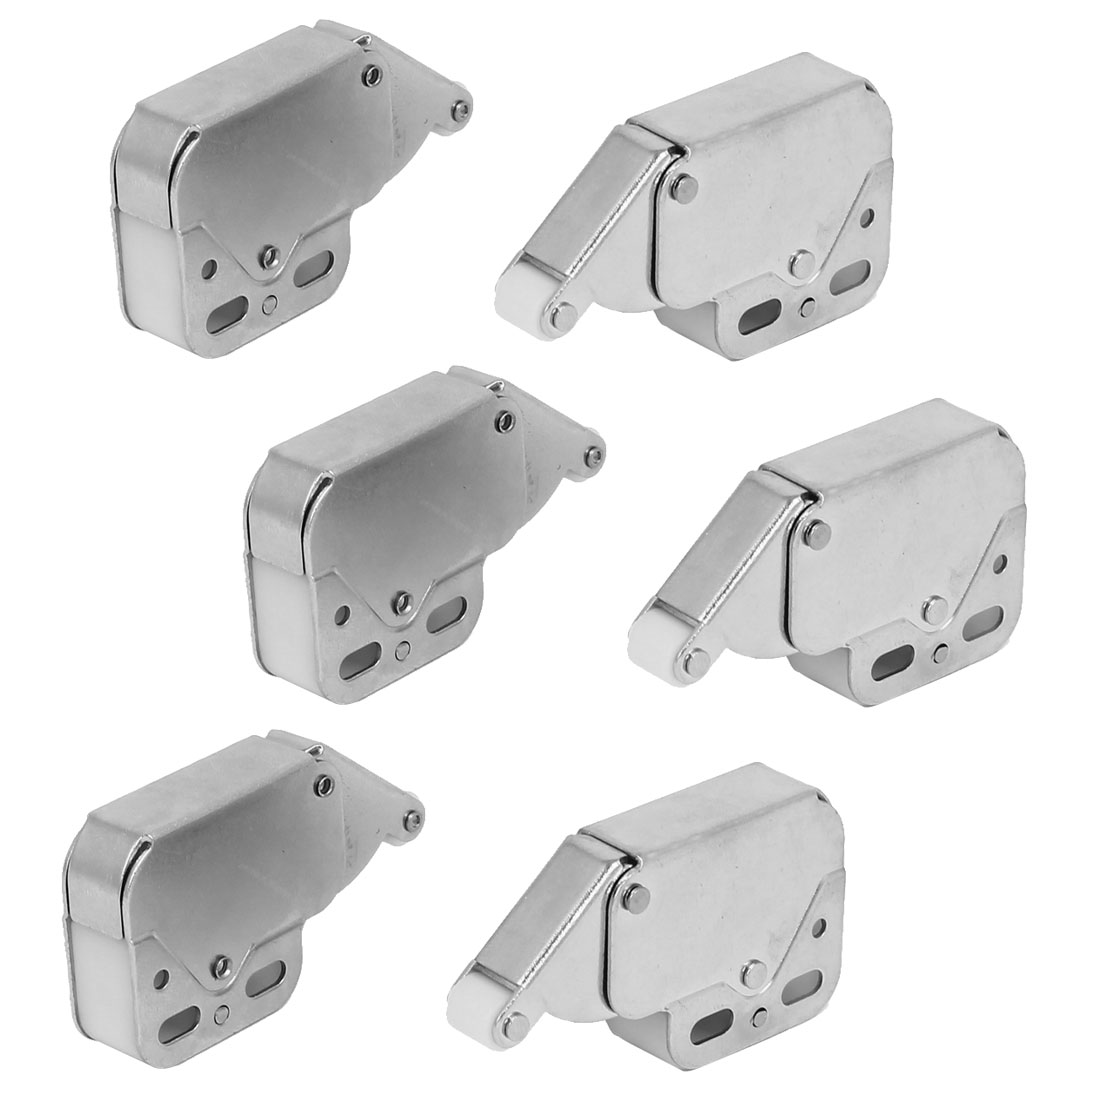 48mmx11mmx28mm Elephant Shaped Wheel Door Catch Lock Touch Push Latches 6pcs